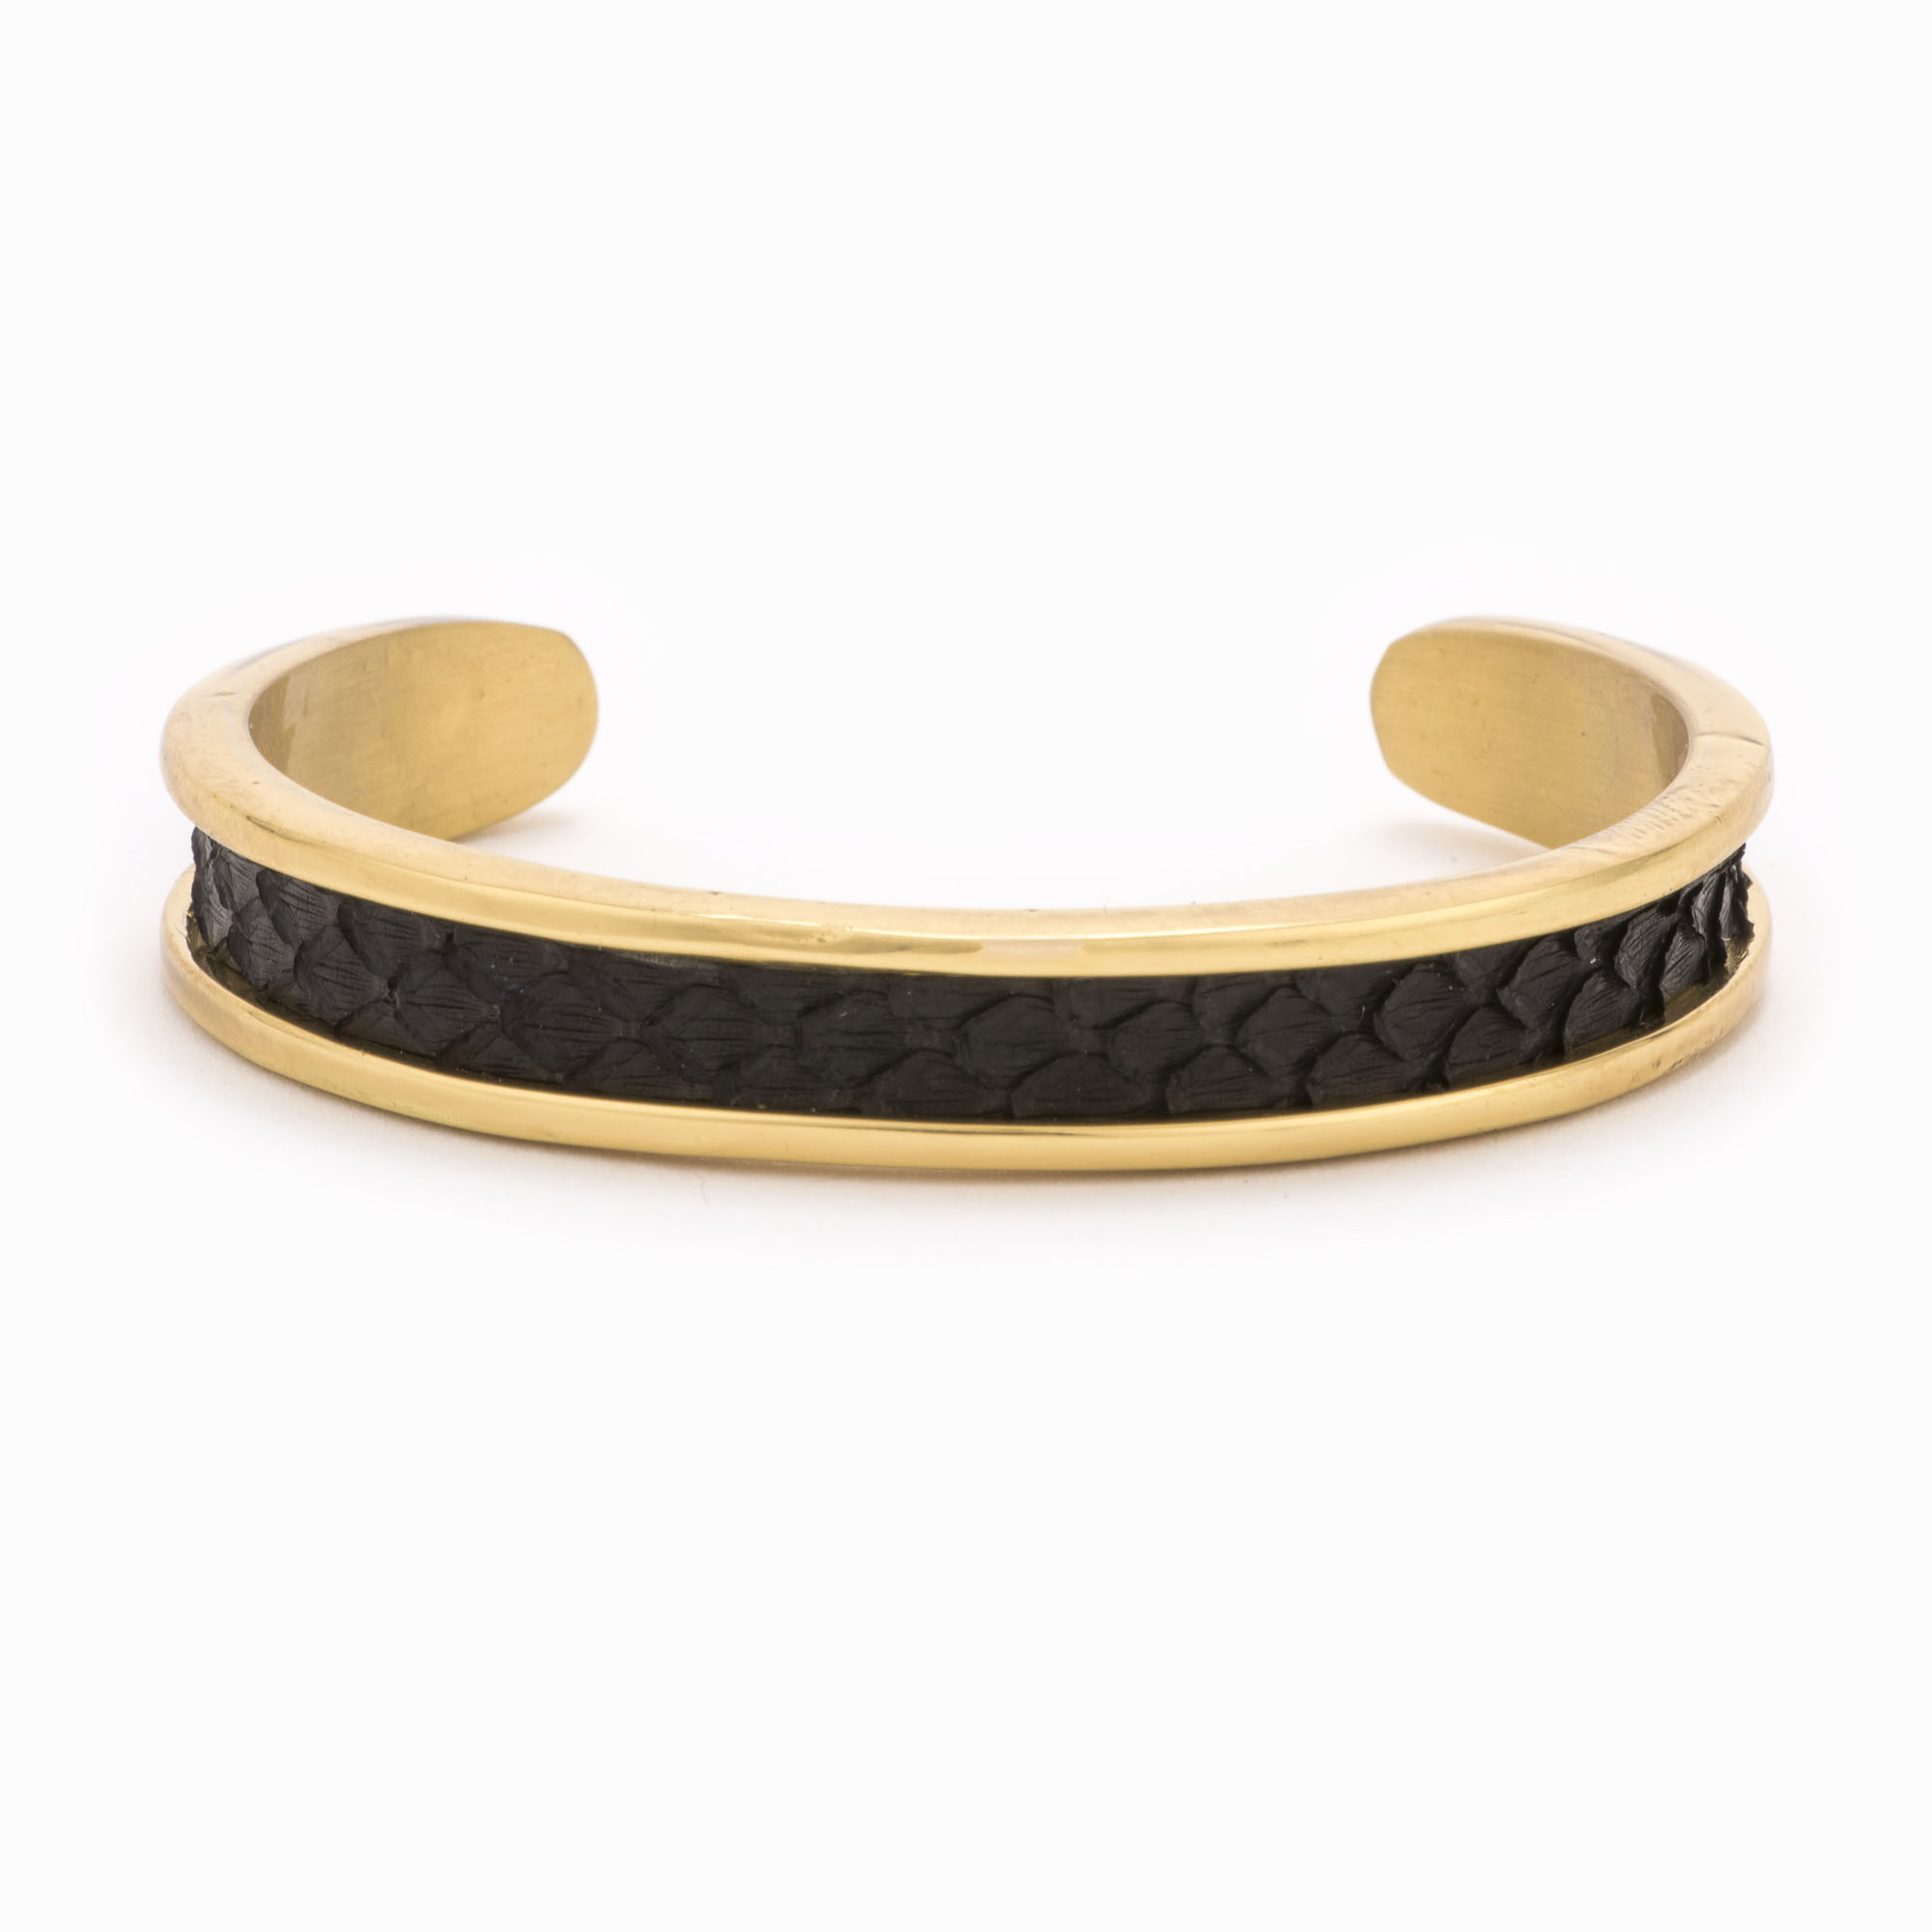 Small Black Gold Cuff